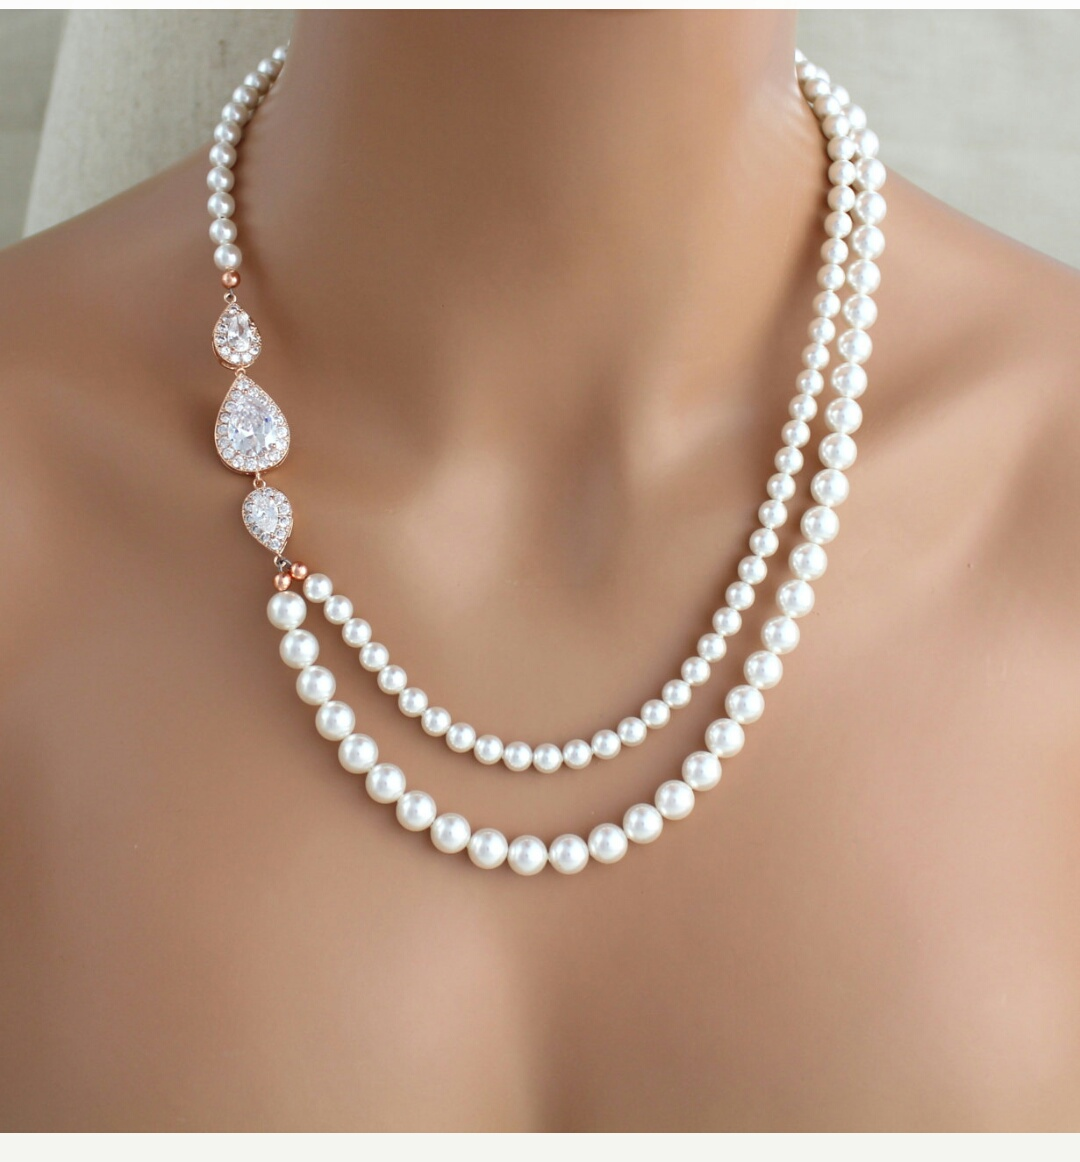 Pearl chain designs photos — photo 2